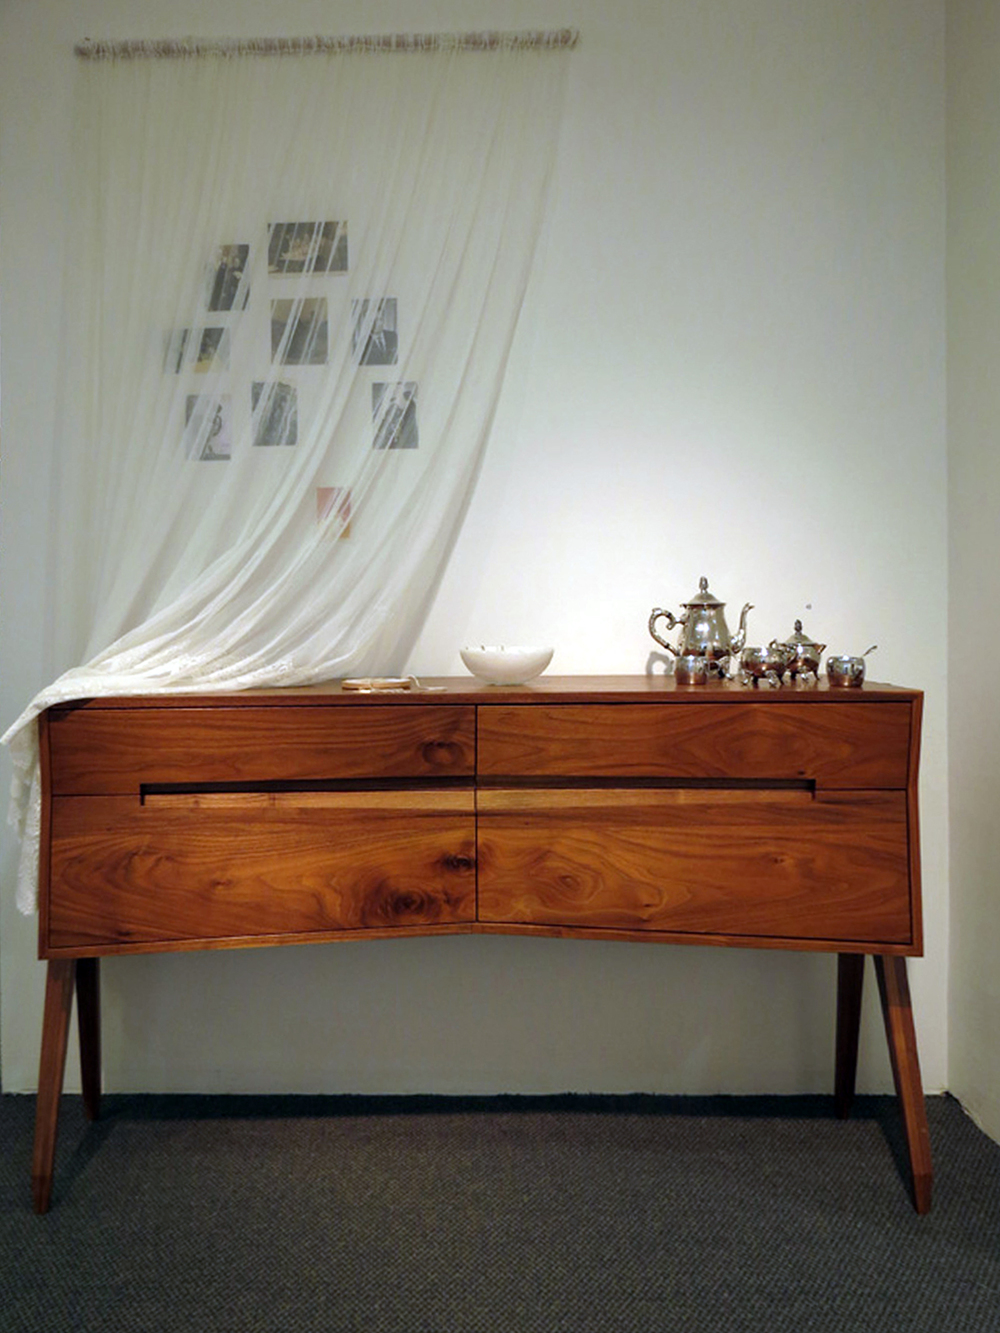 43.  Expectant console in installation , Penelope Forlano, American Black Walnut, $8450 (personal ephemera NFS)